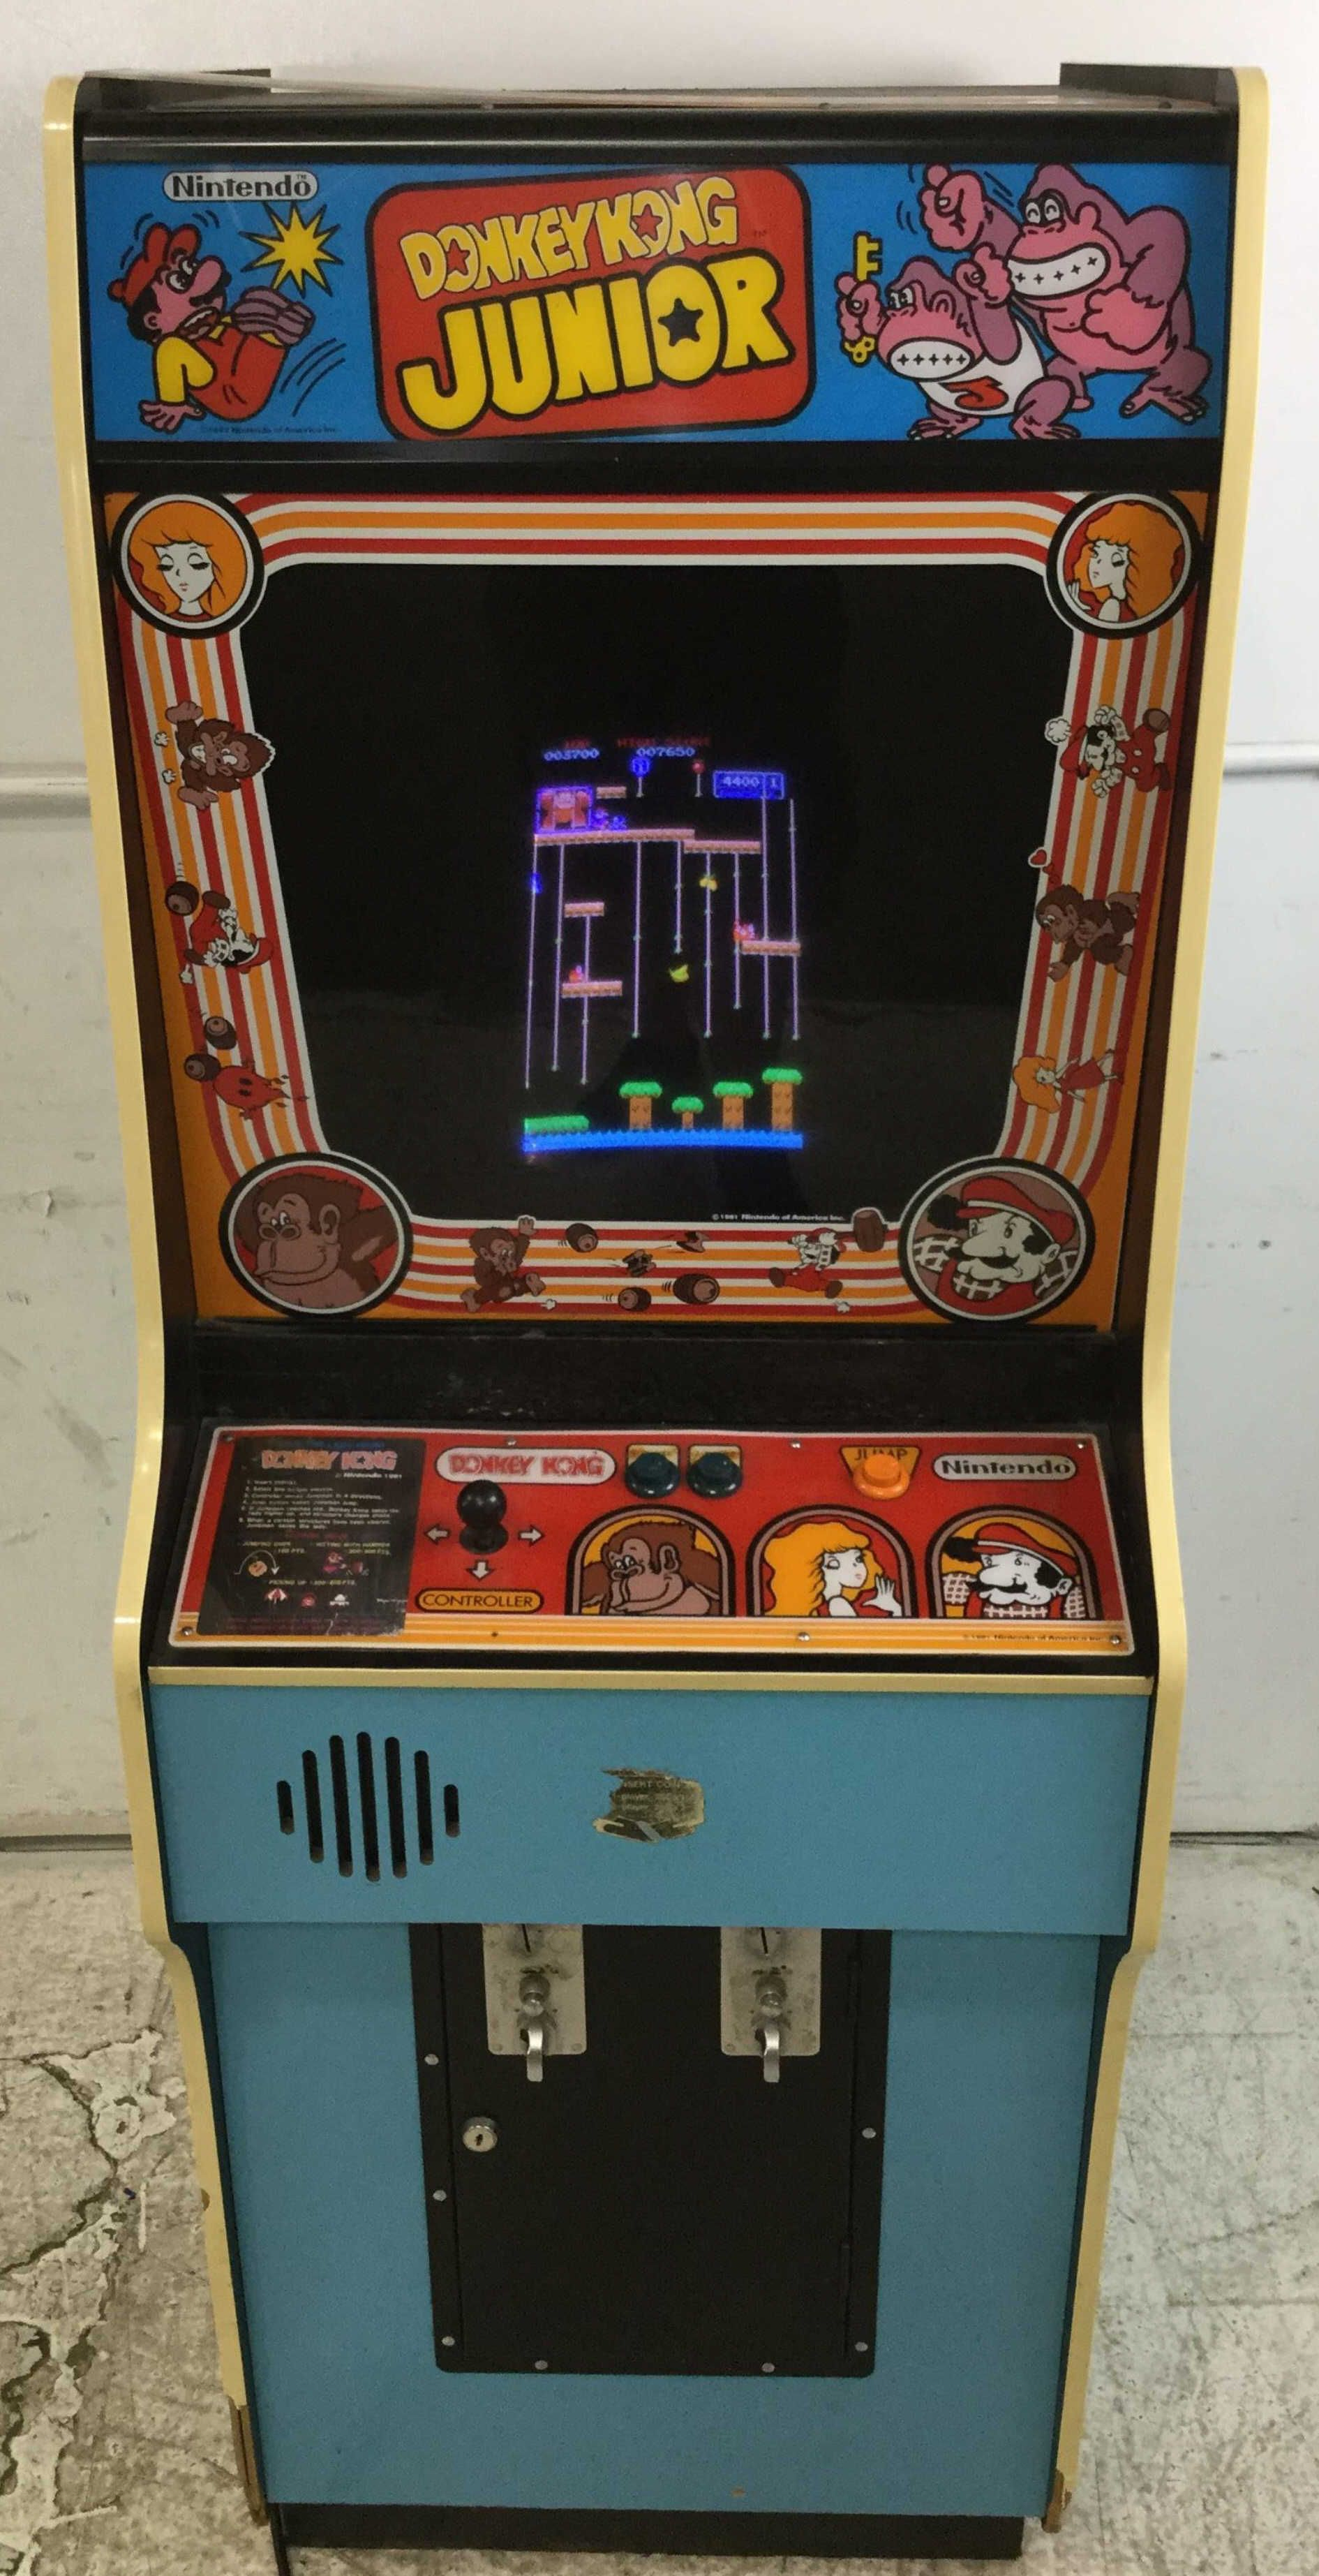 Nintendo Donkey Kong Junior Arcade Game SOLD 750 (With